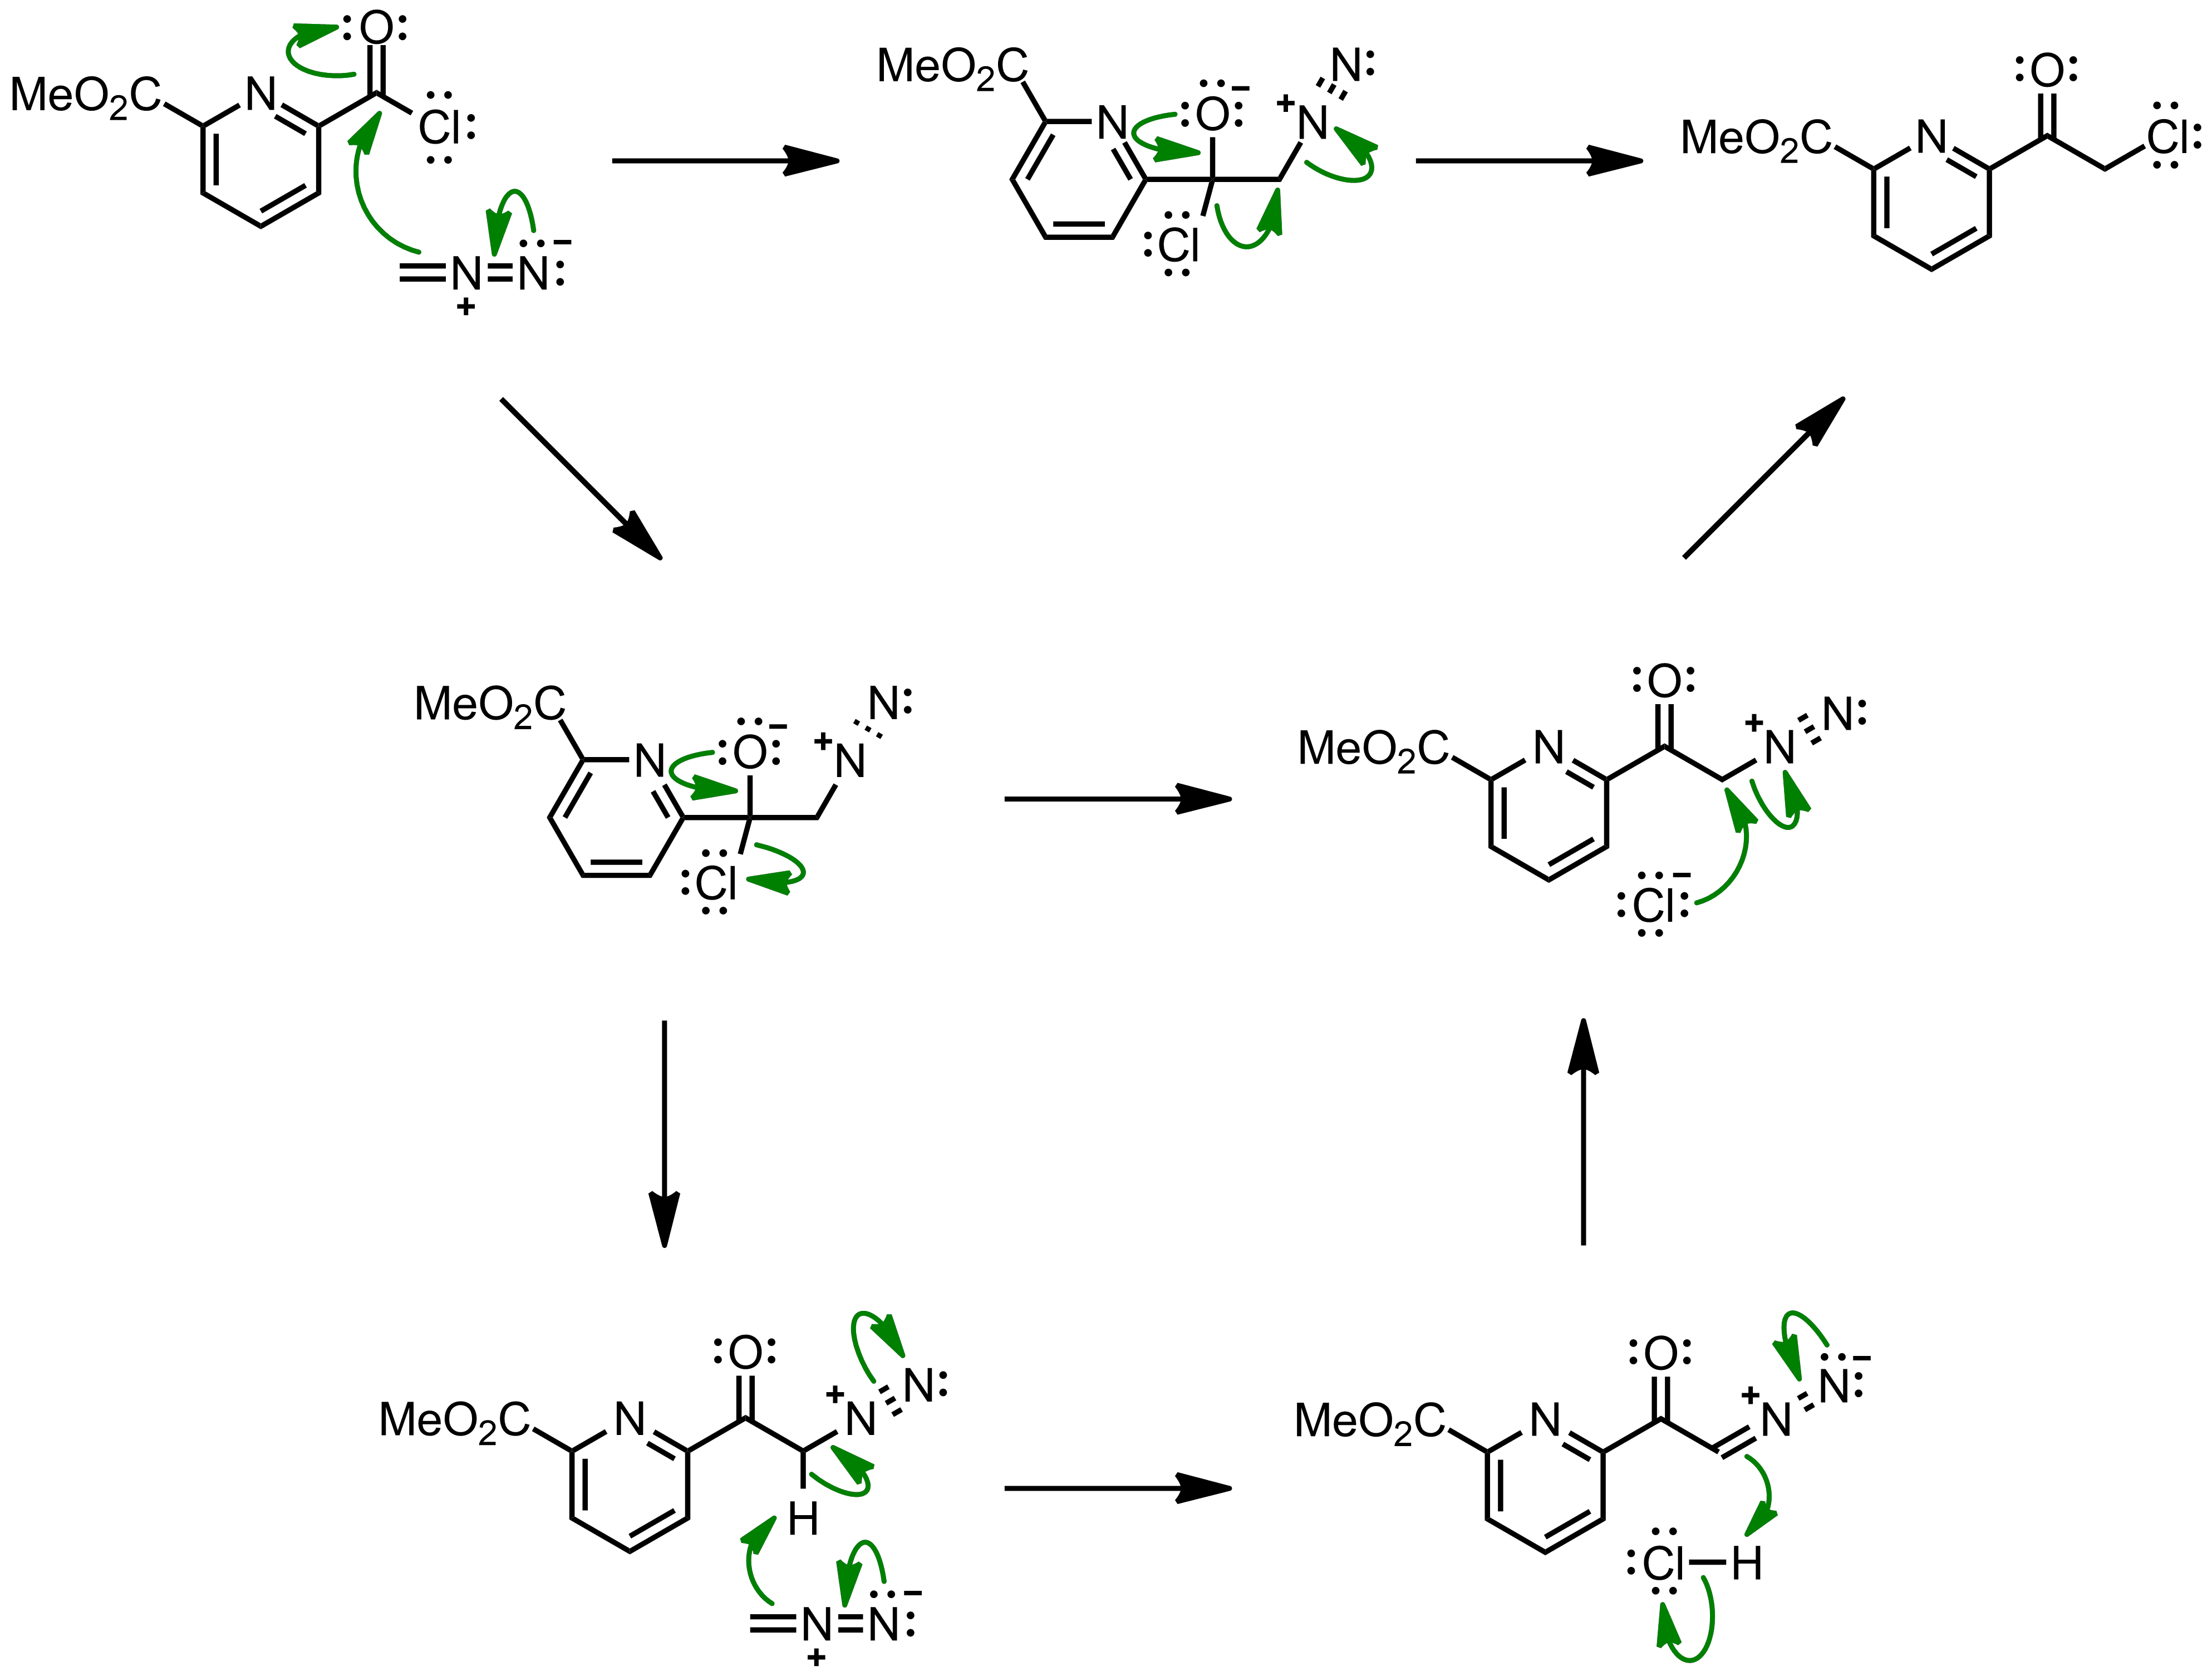 Mechanism of the Nierenstein reaction